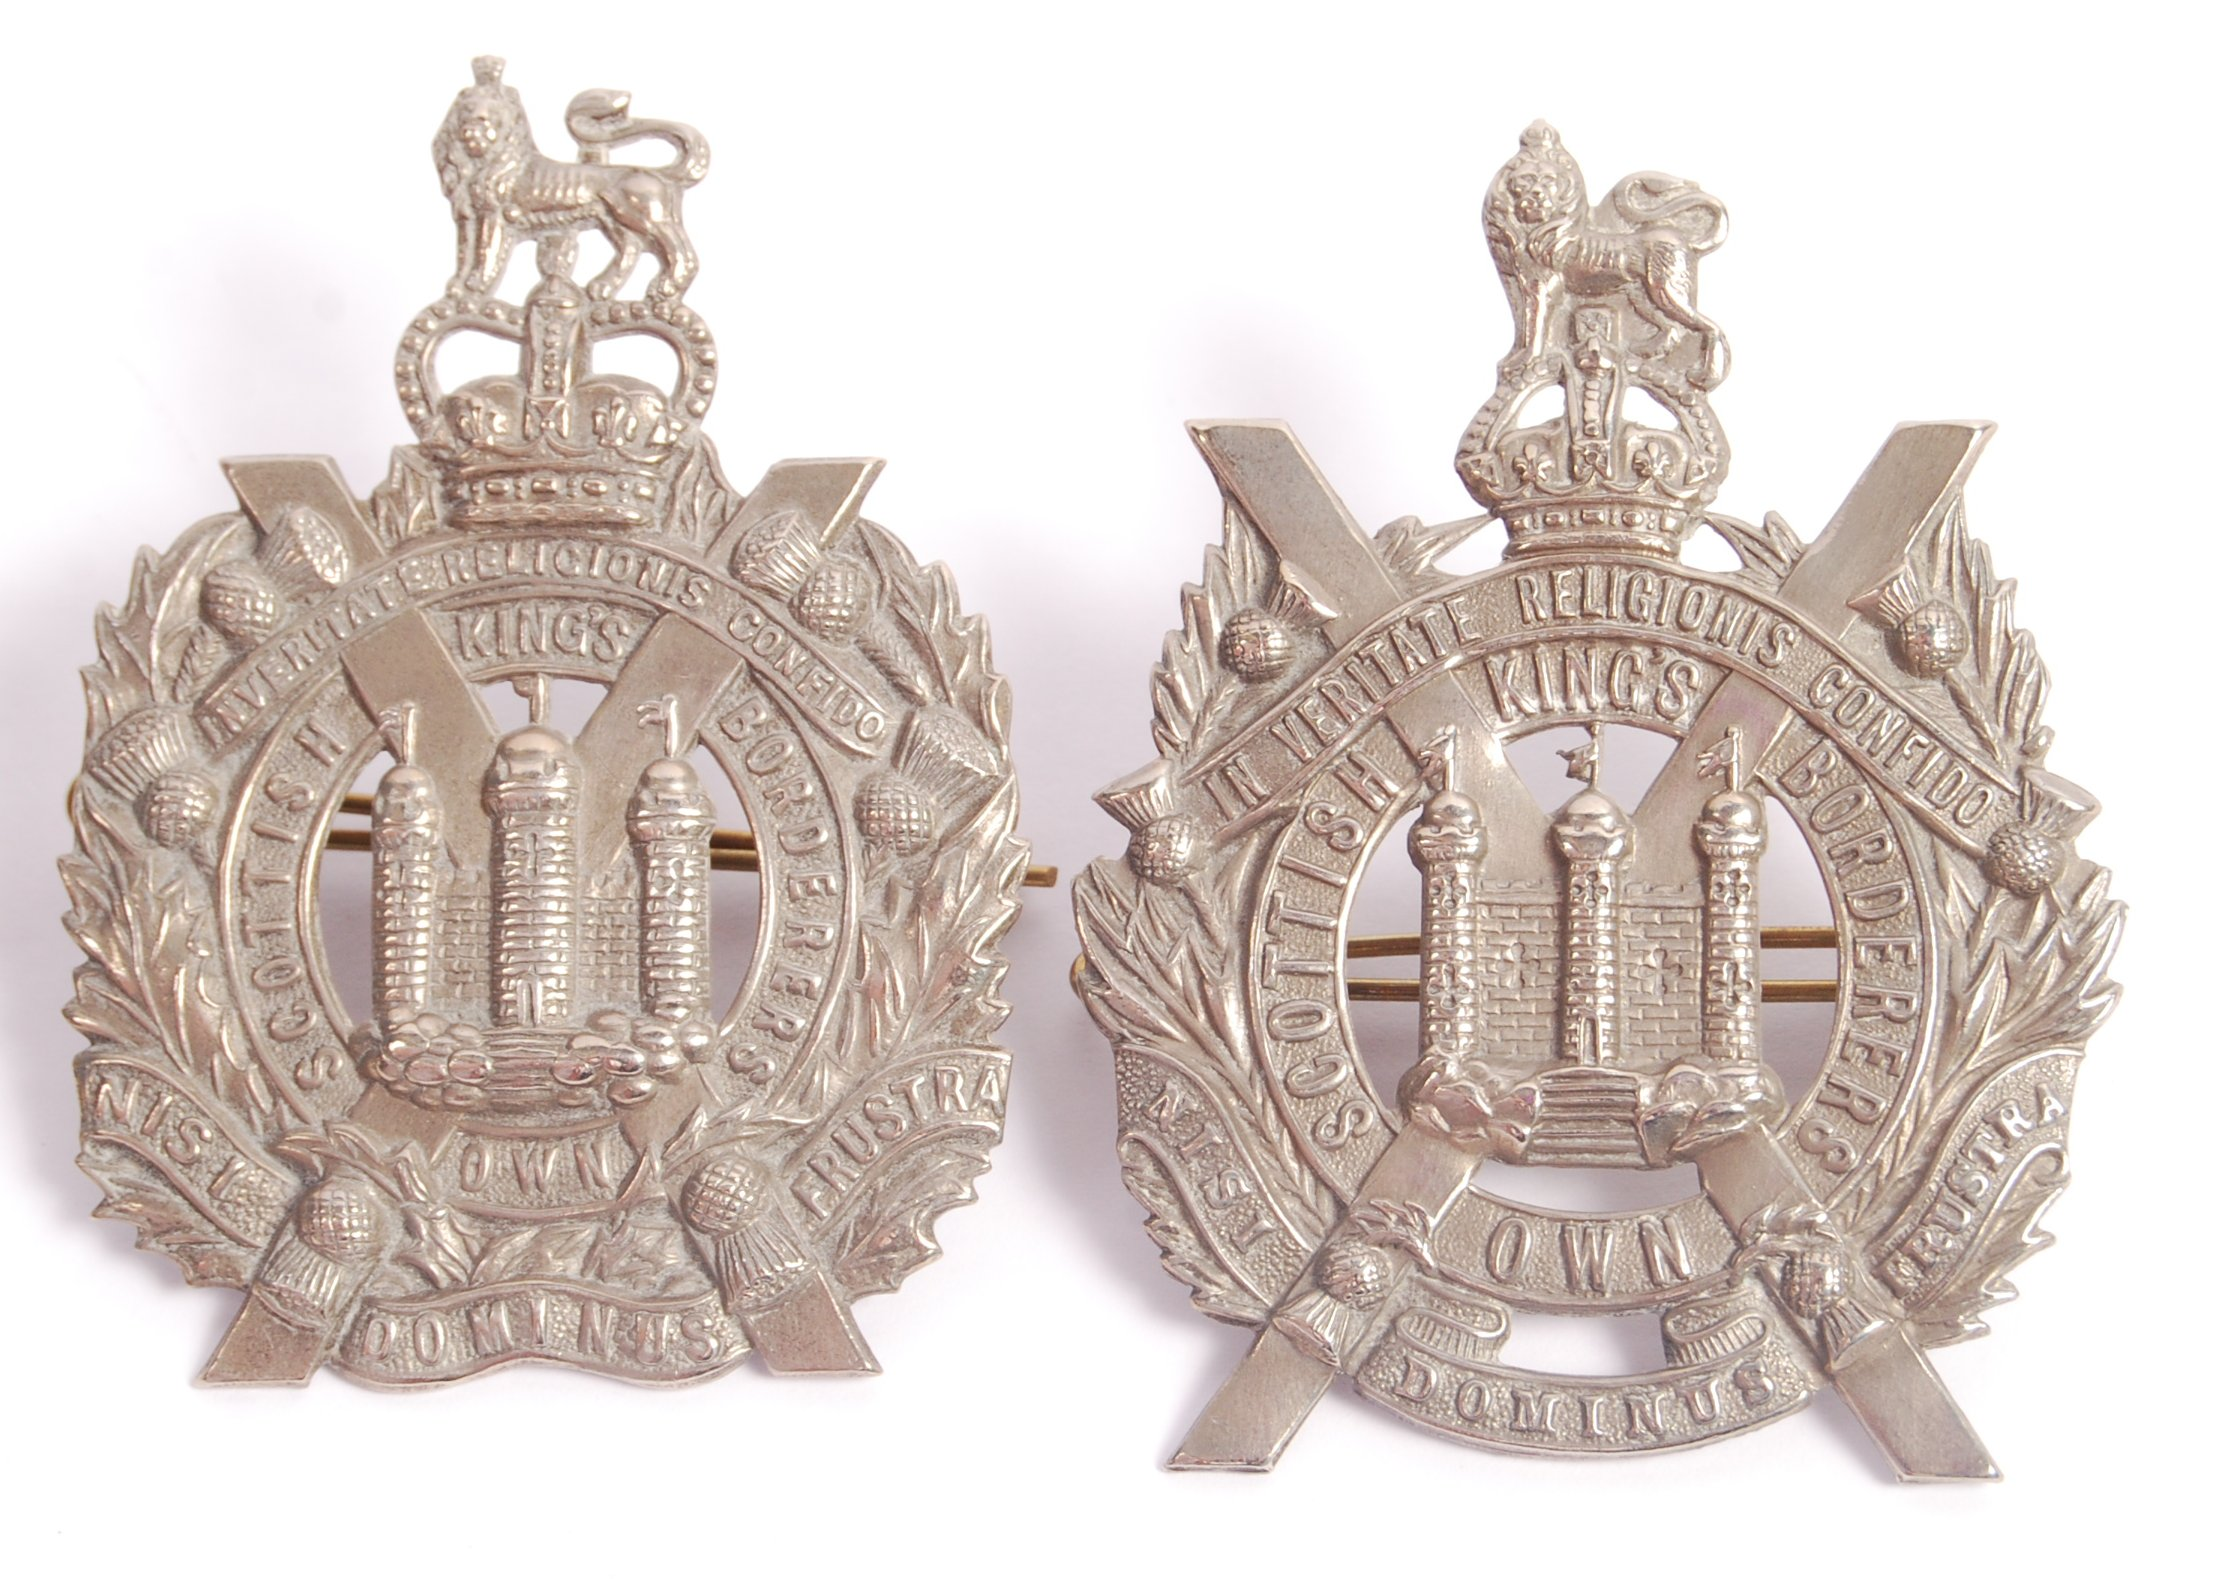 Lot 138 - COLLECTION OF FOUR SCOTTISH OWN BORDERERS MILITARY